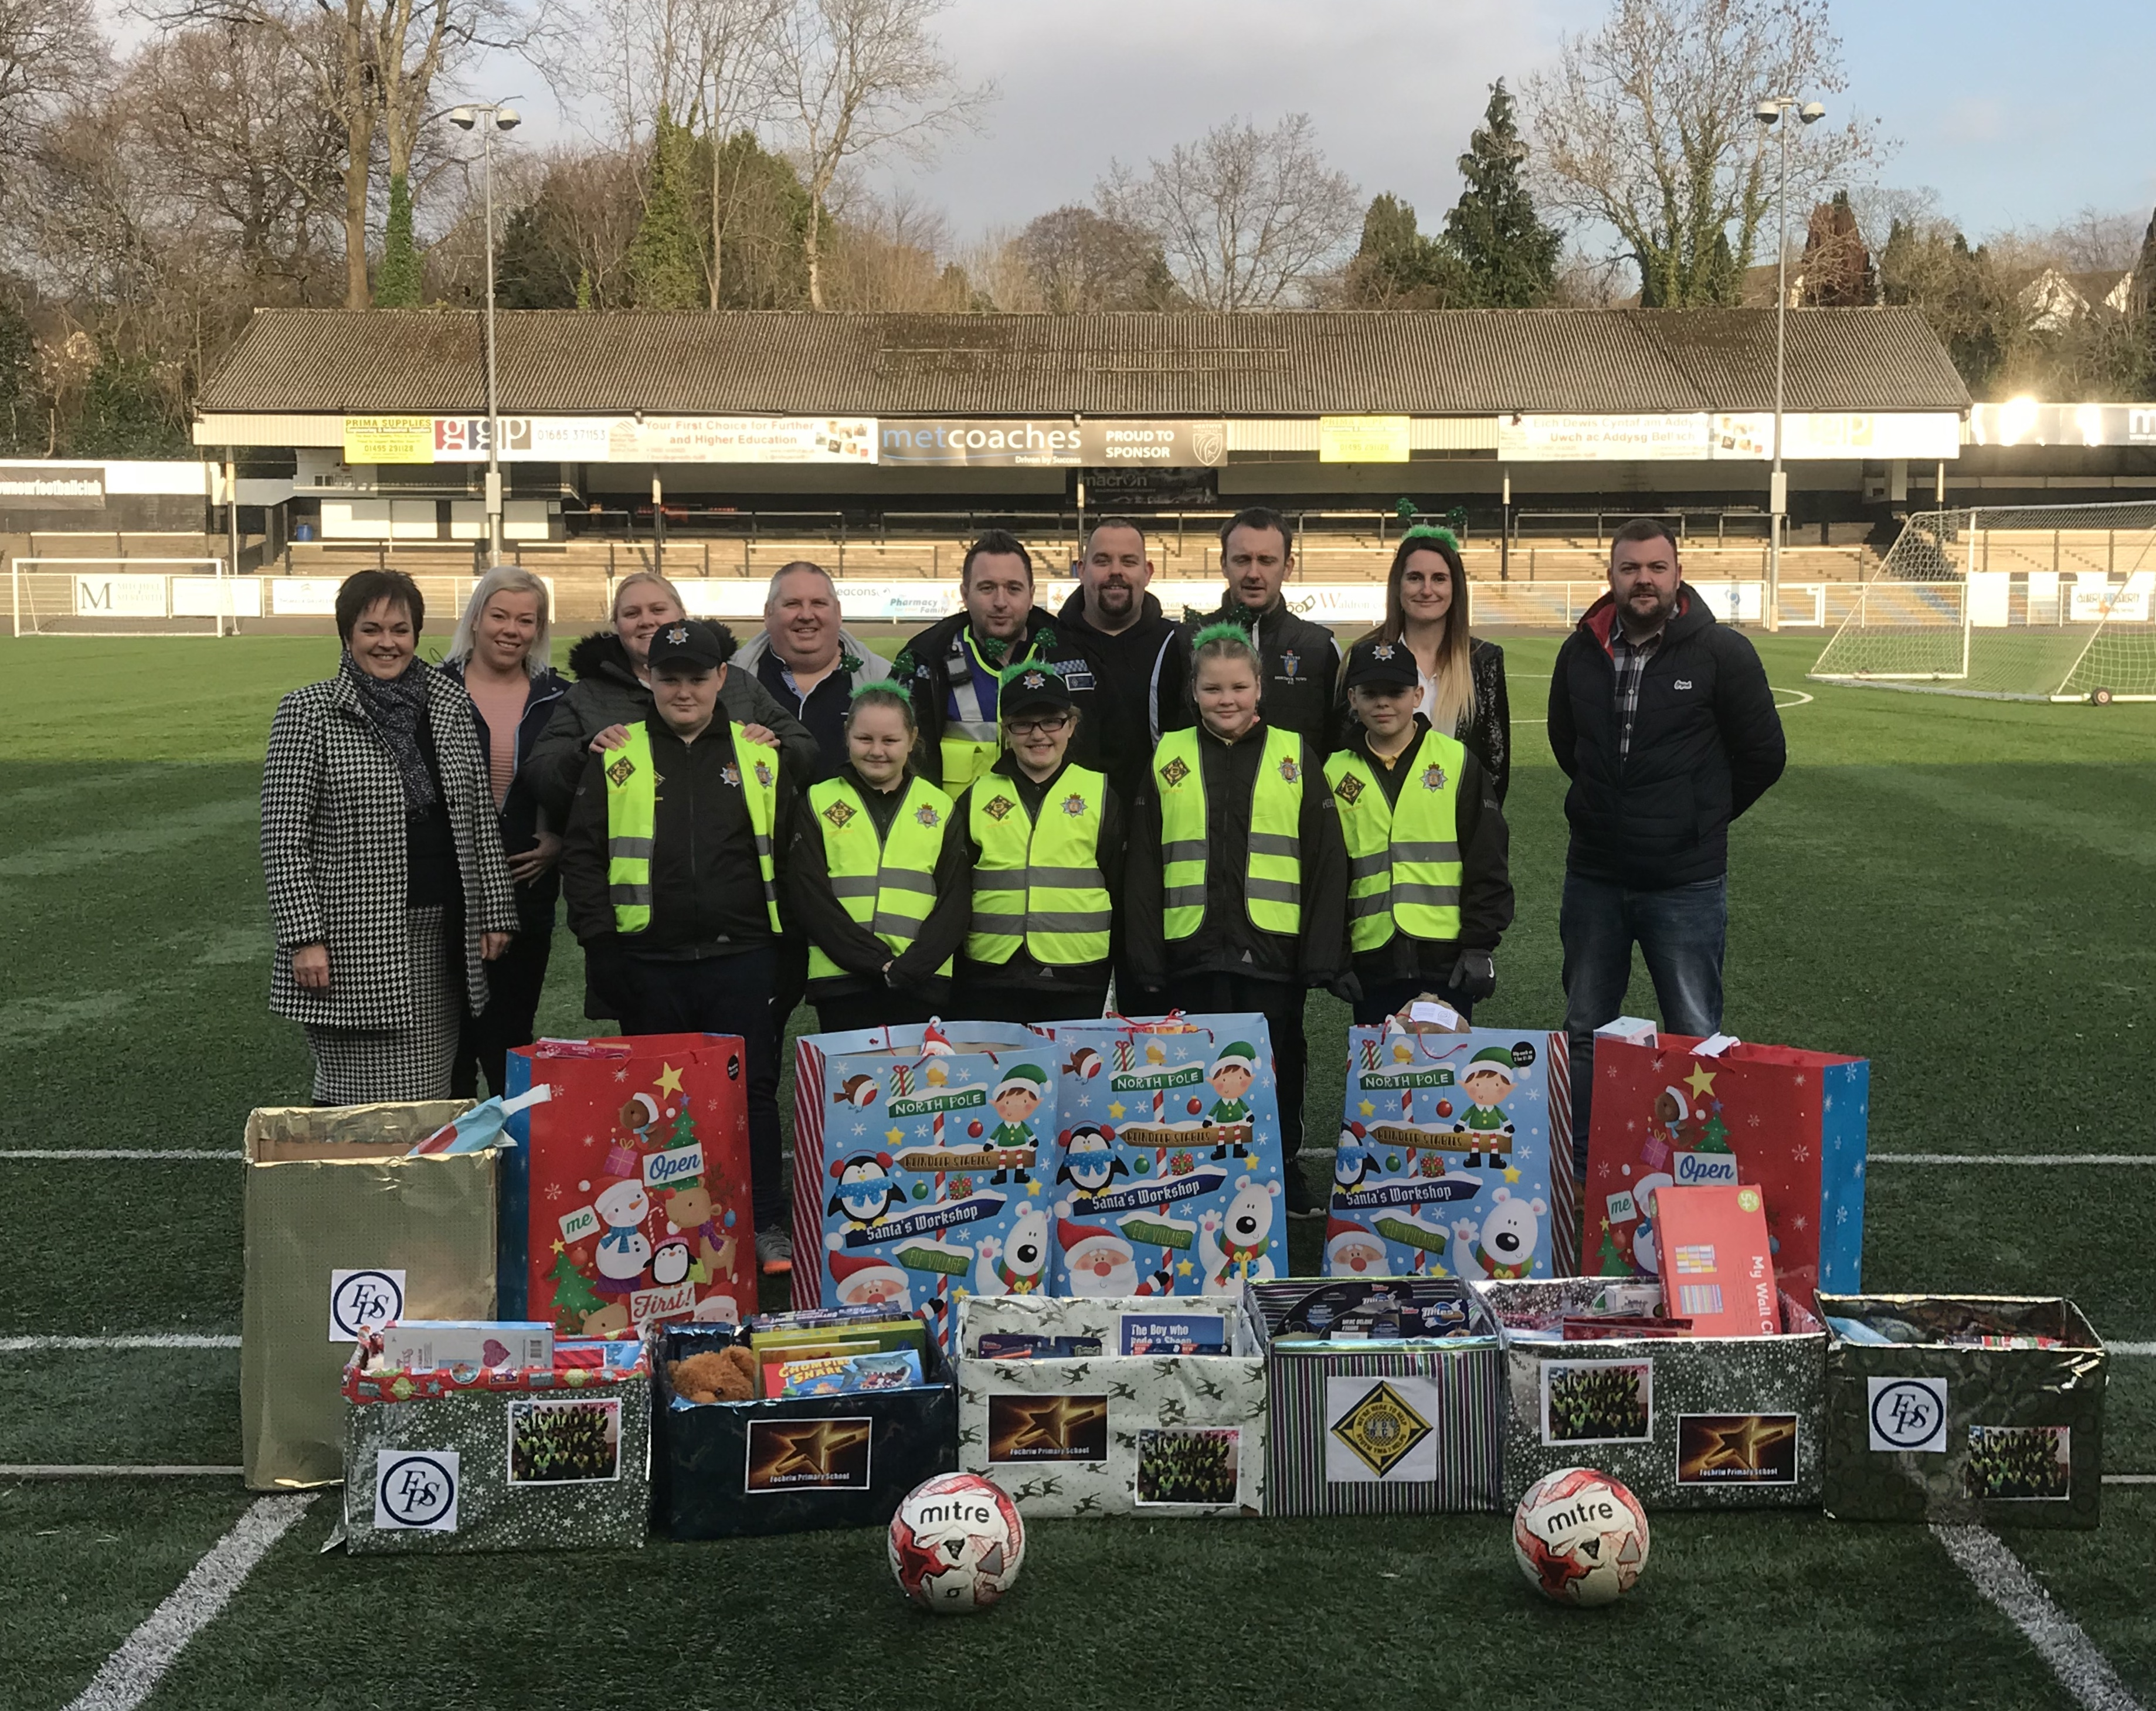 FOCHRIW Primary School's Mini Police Collection - 'The Toys for Grenfell' Appeal